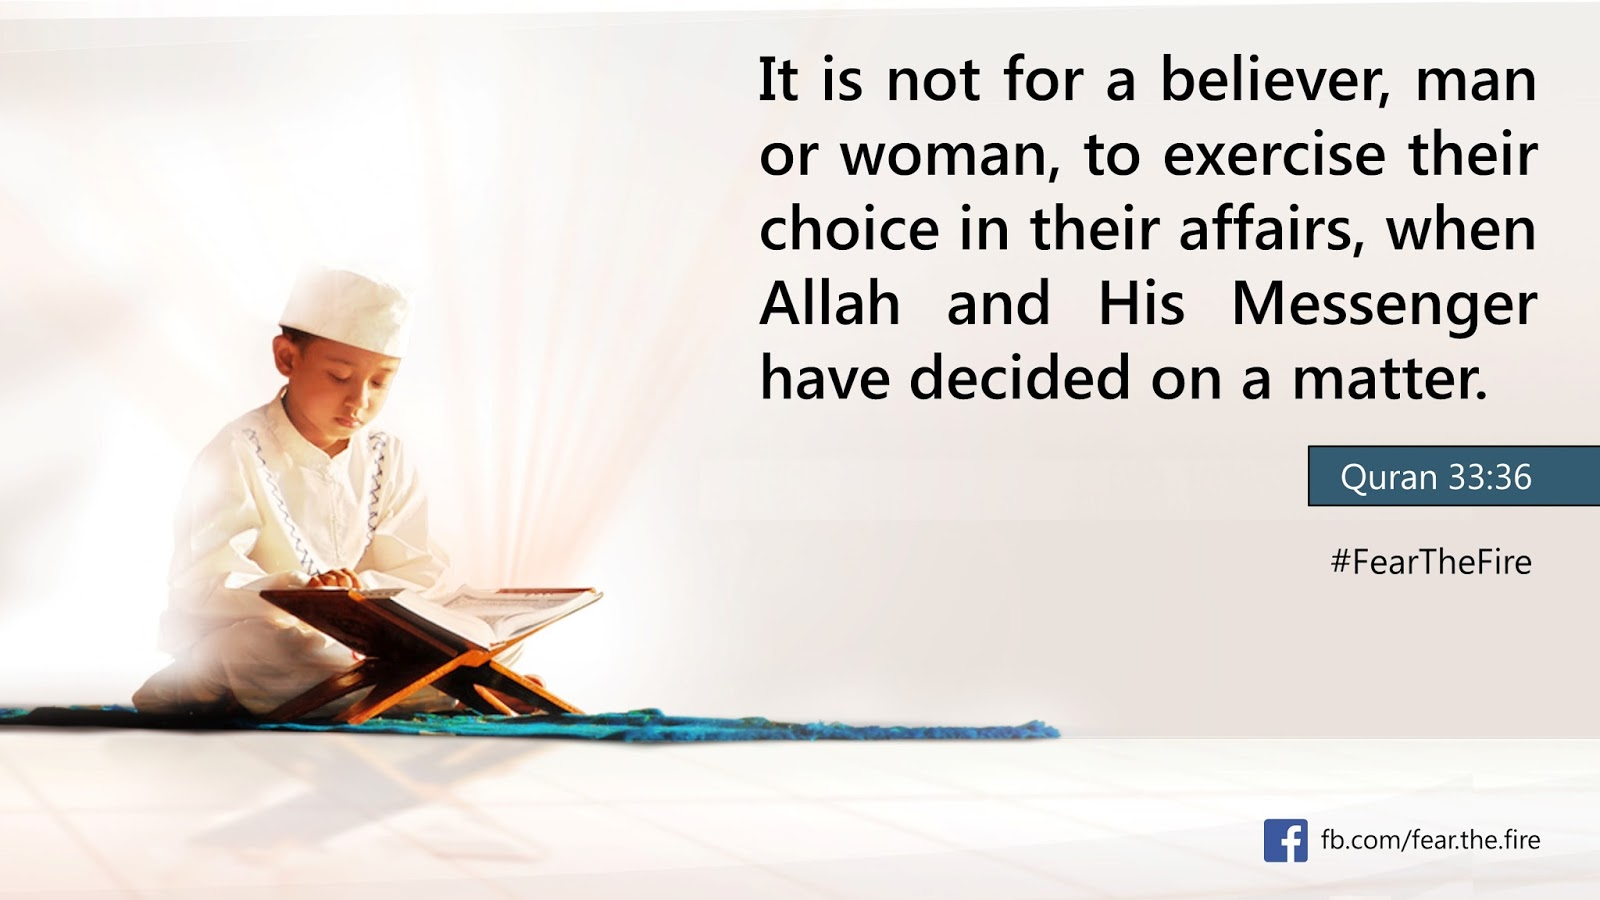 womens status in islam Equality or equity: that's the question don't forget to subscribe follow us: website: wwwq4ttv facebook: /officialq4t instagram: @q4tofficial twitter.